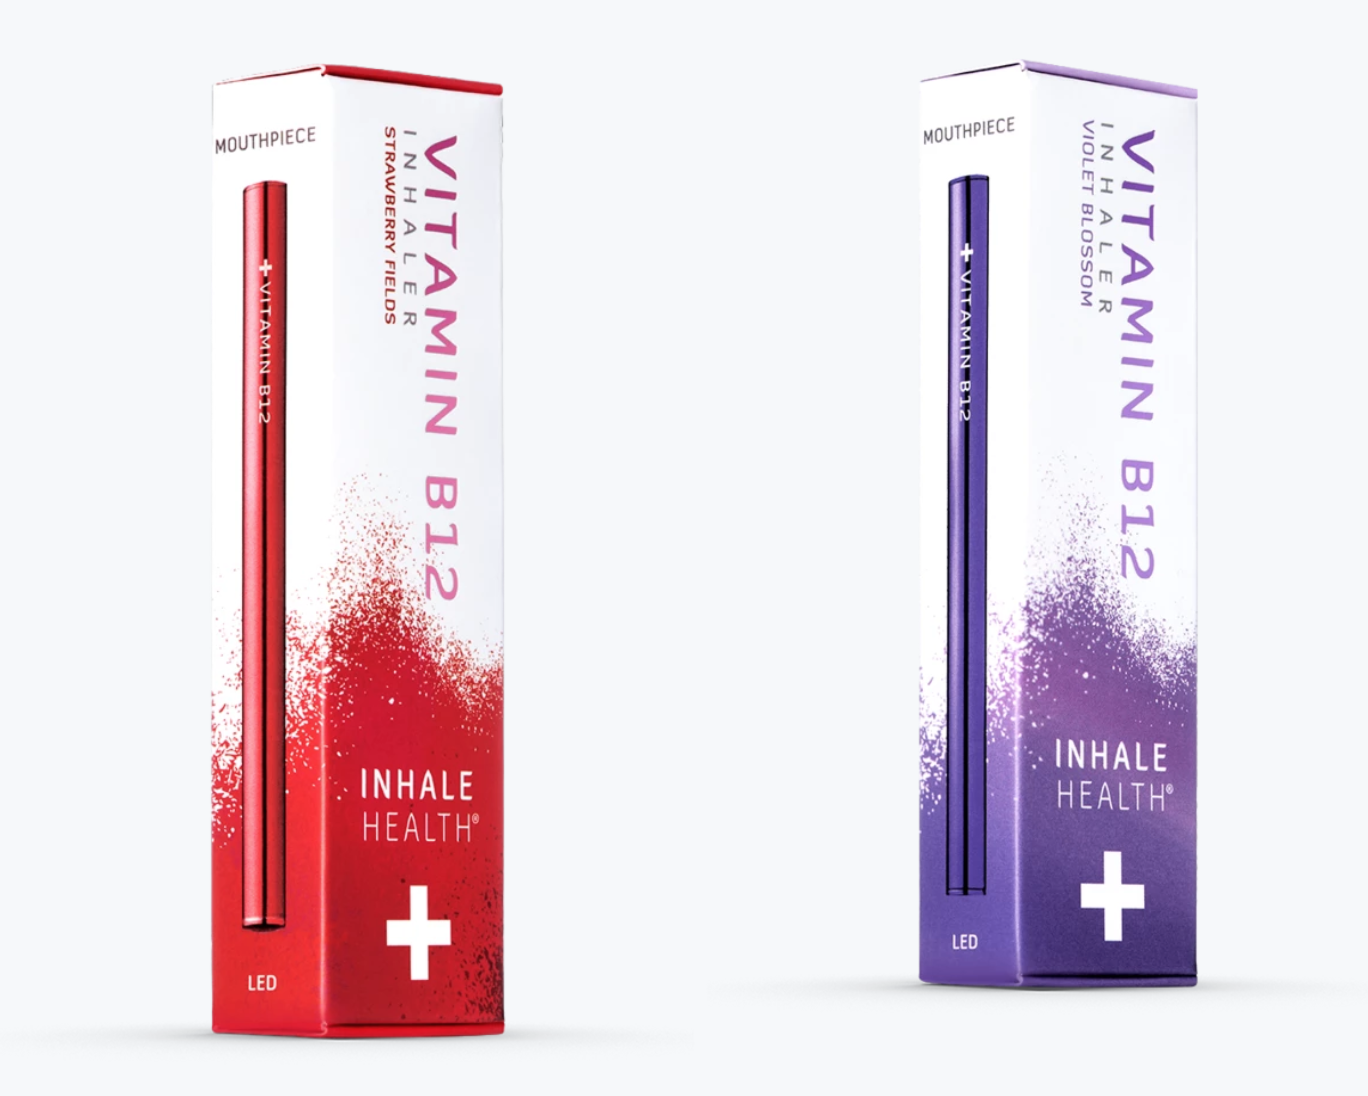 Inhale Health B12 Vape Pen